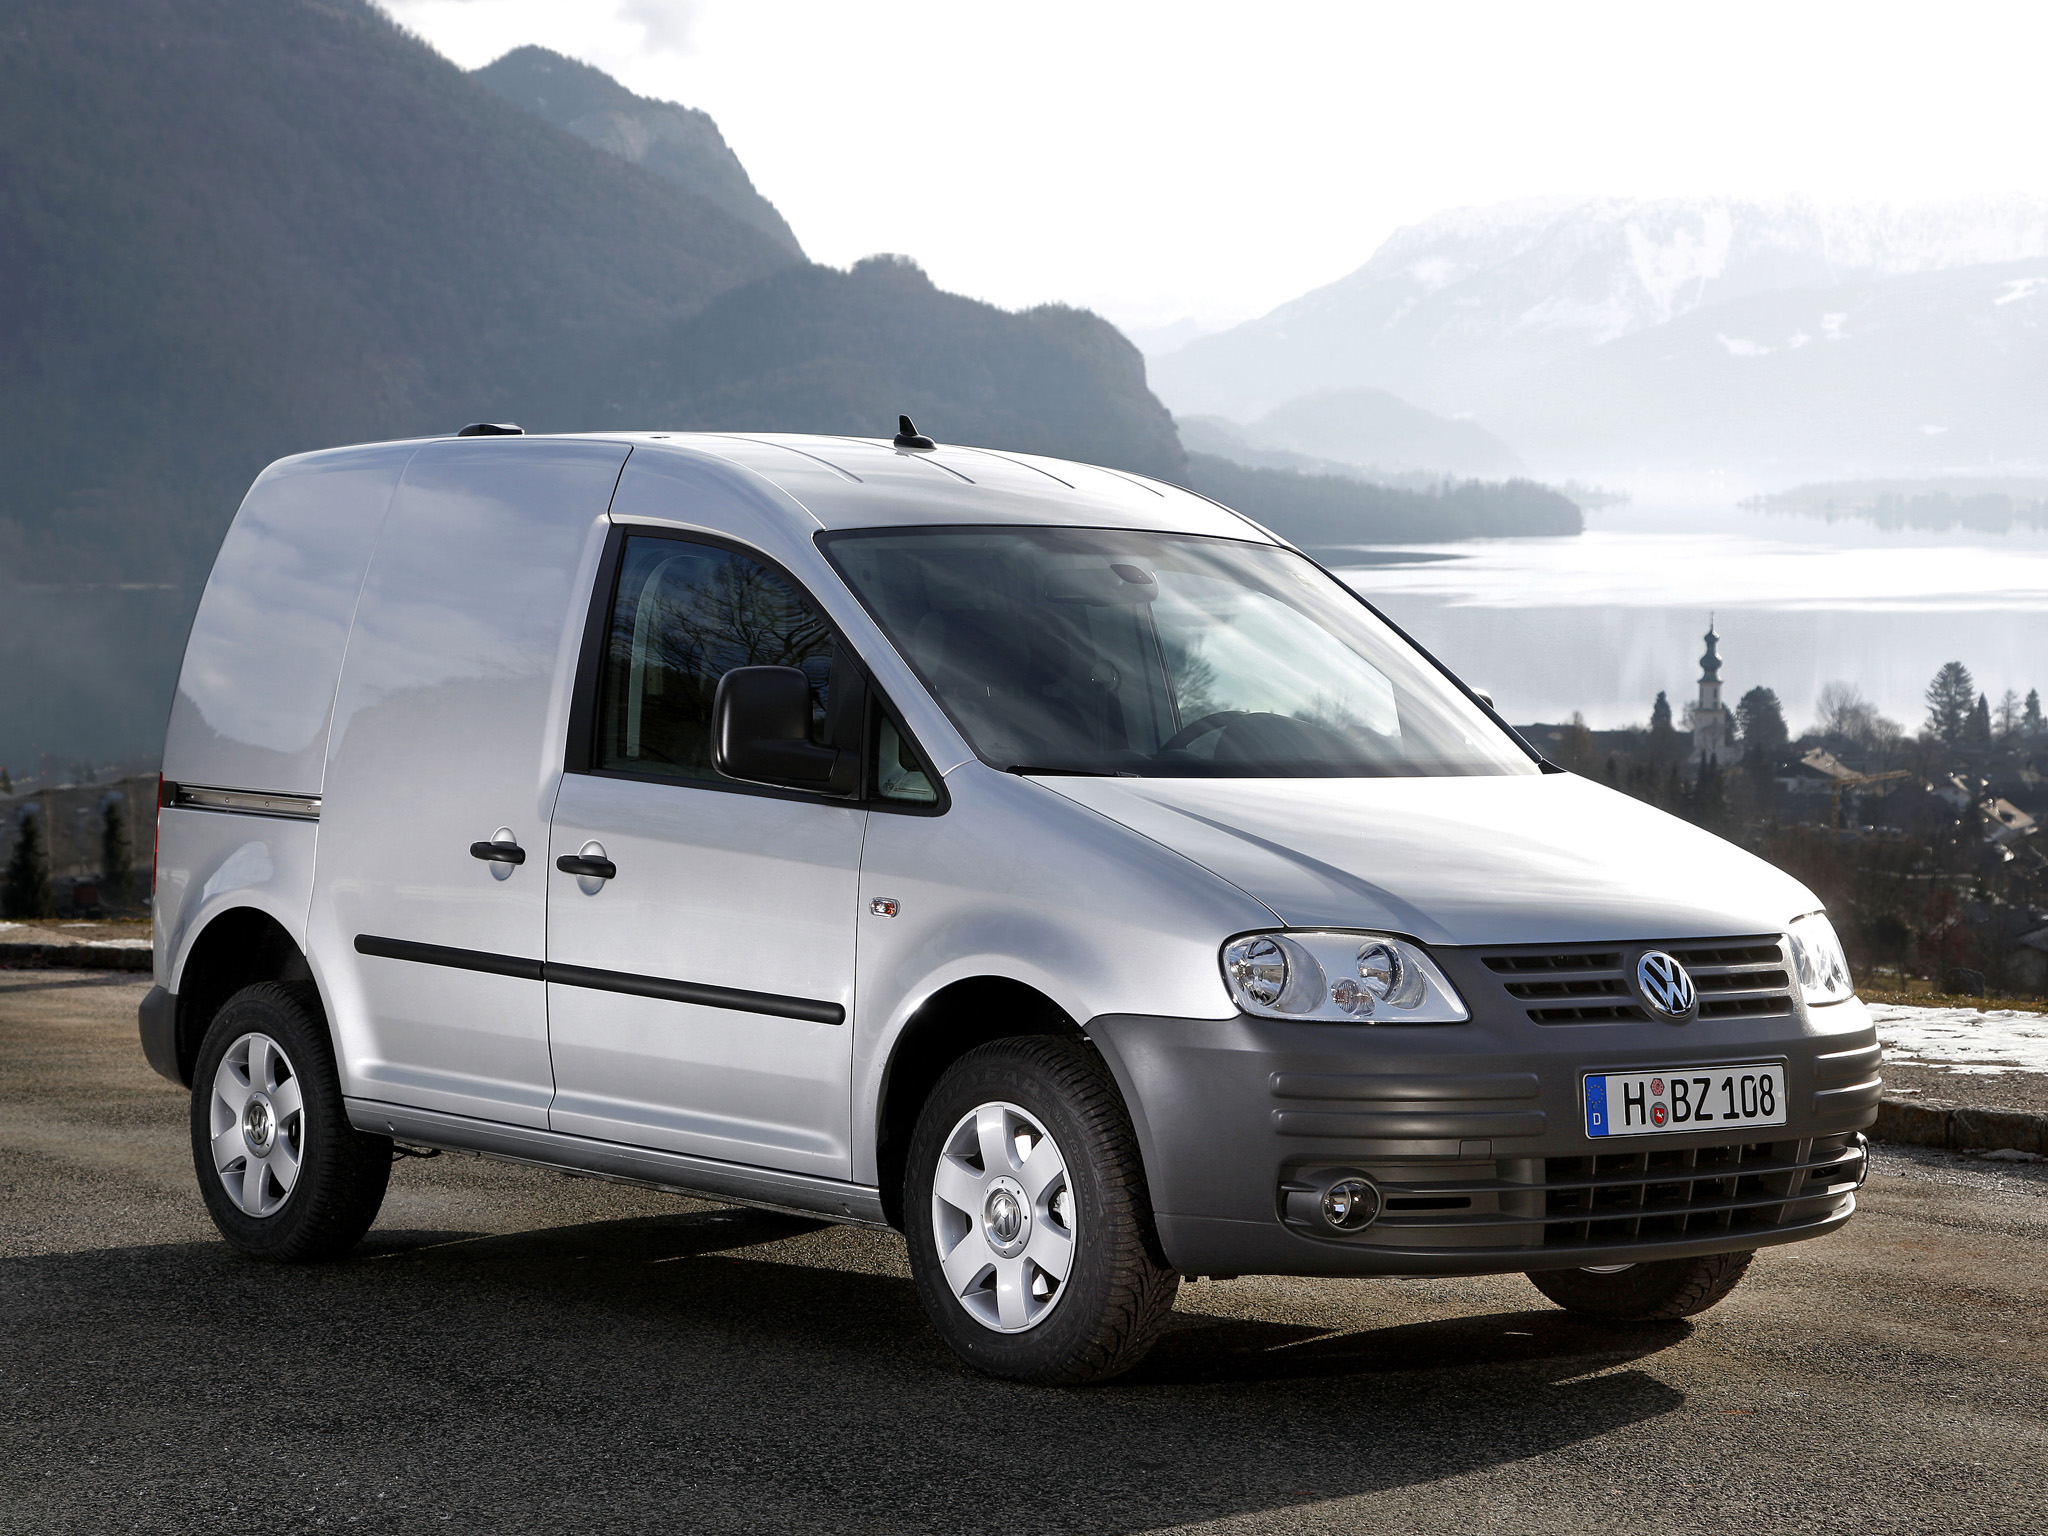 Super 2004 Volkswagen Caddy Photos, Informations, Articles - BestCarMag.com GY-22